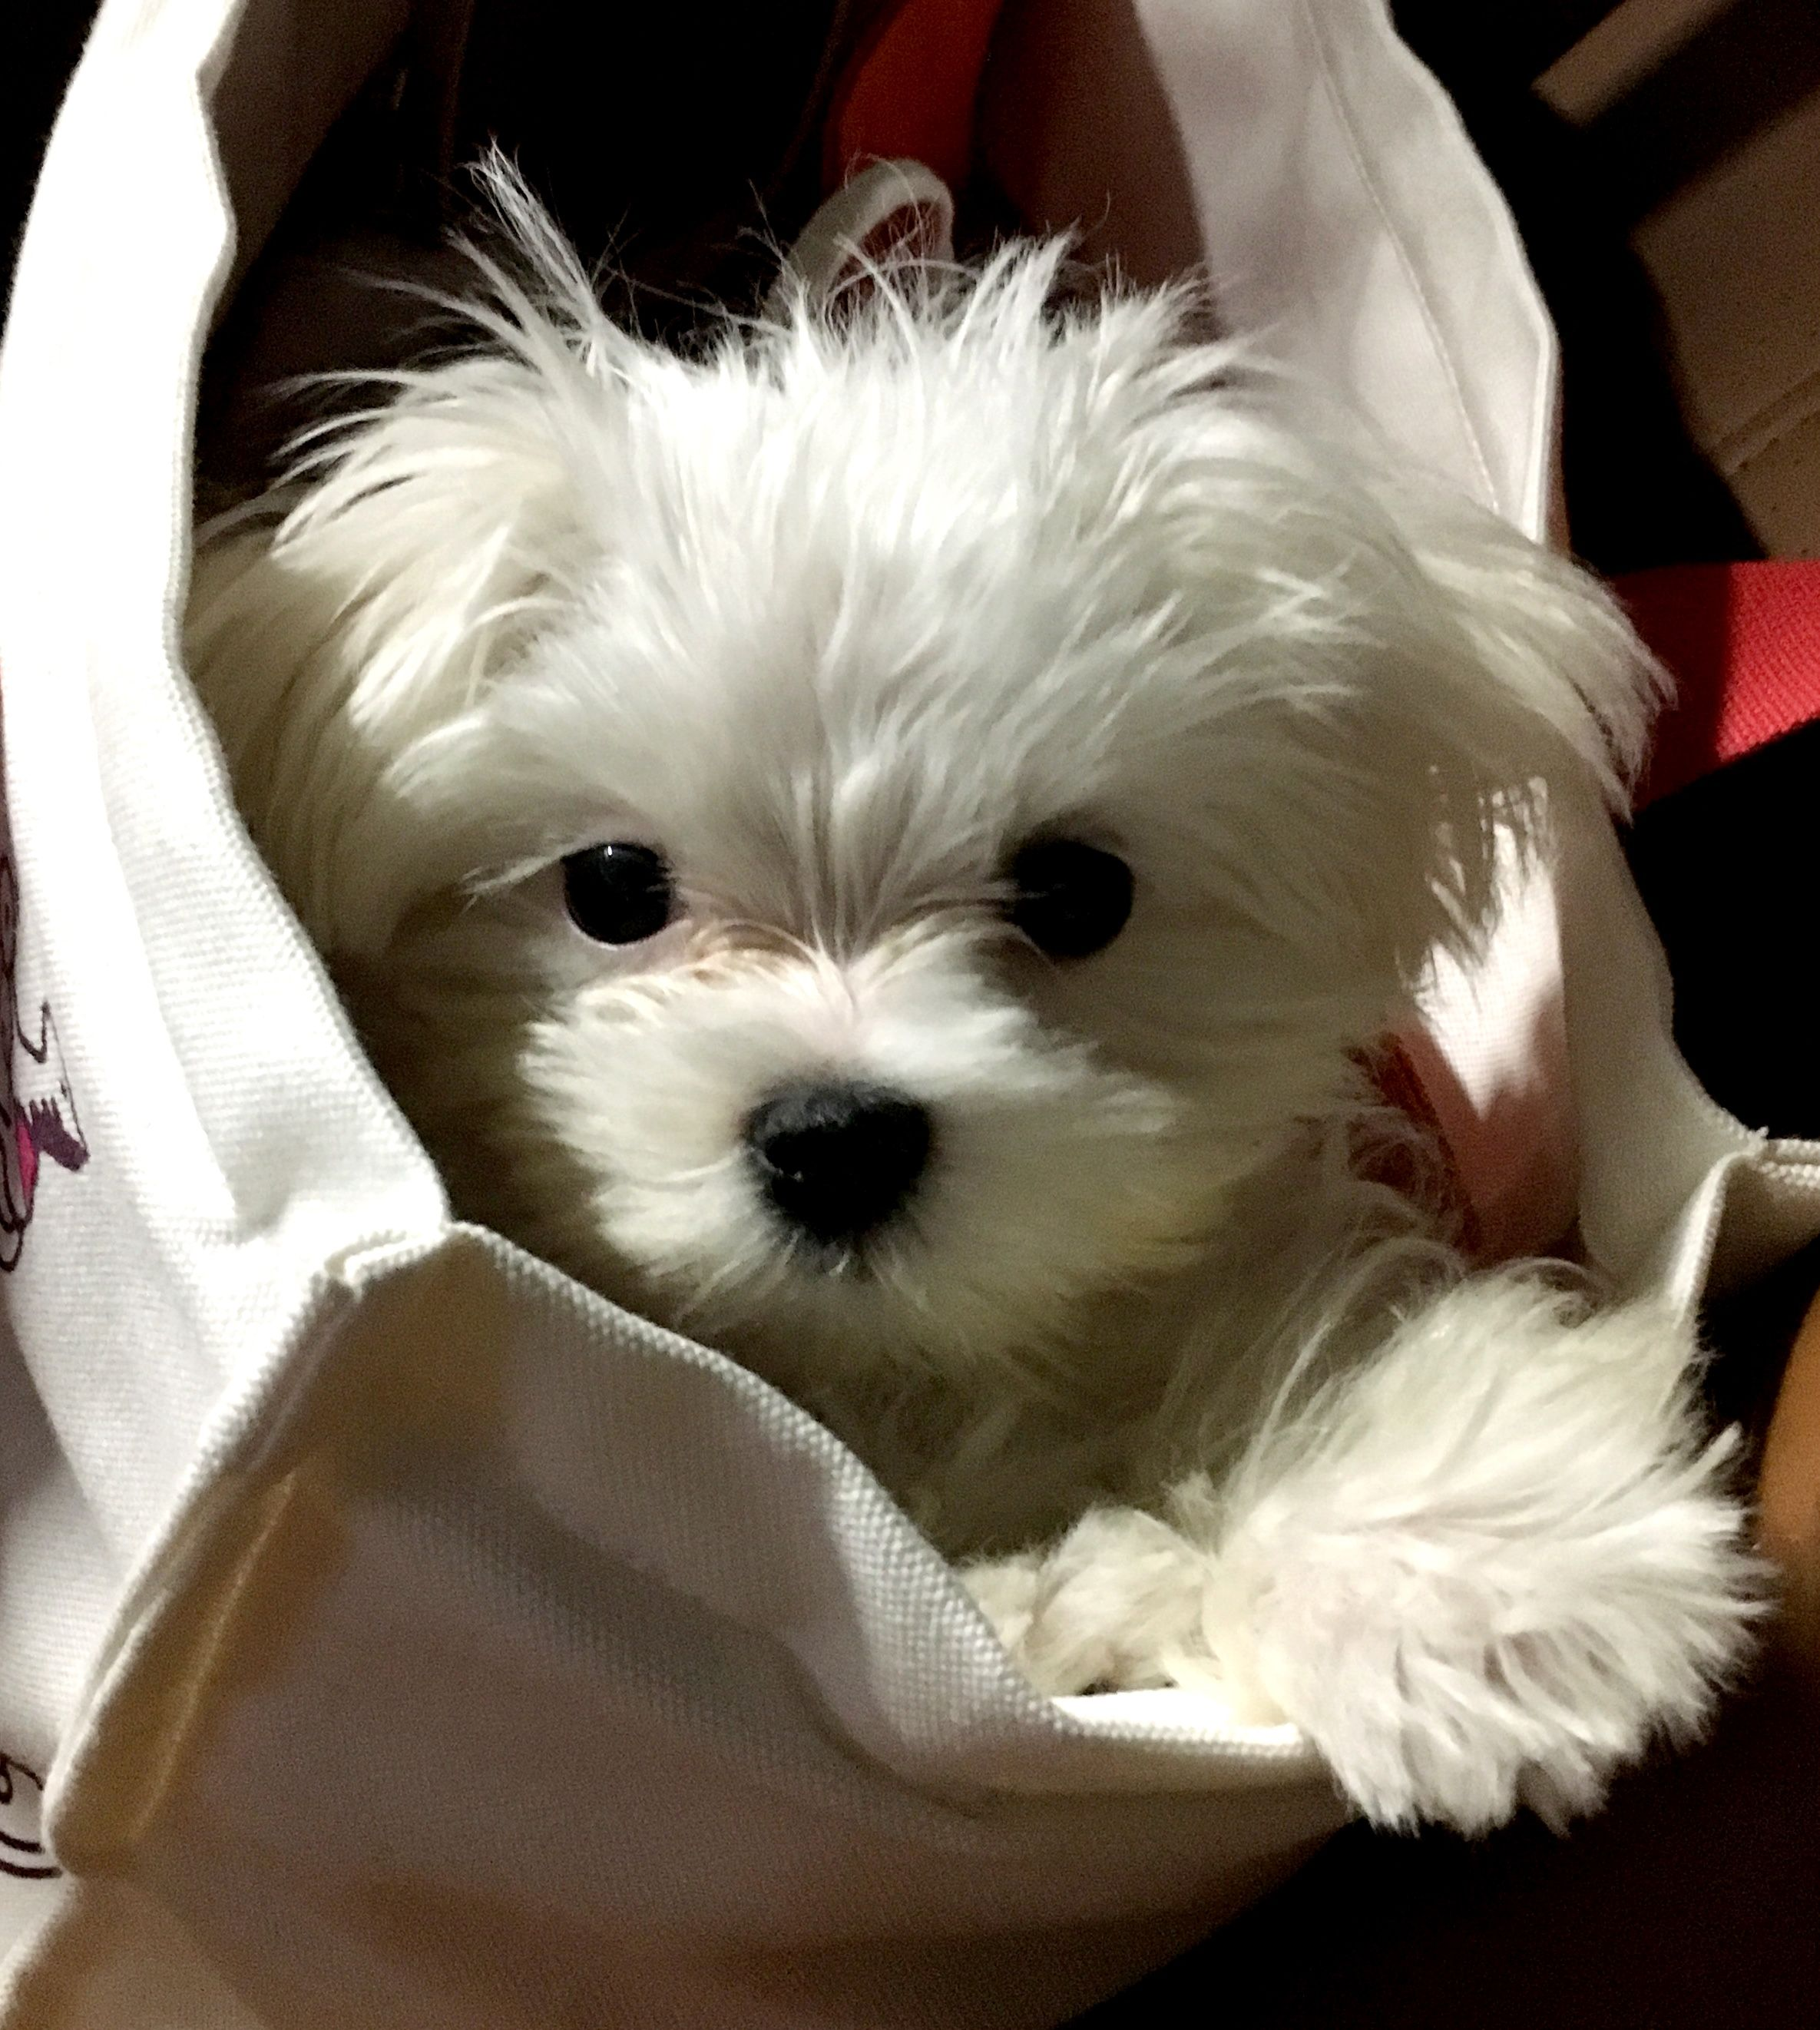 Don't know the breed (maltipoo maybe?), definitely